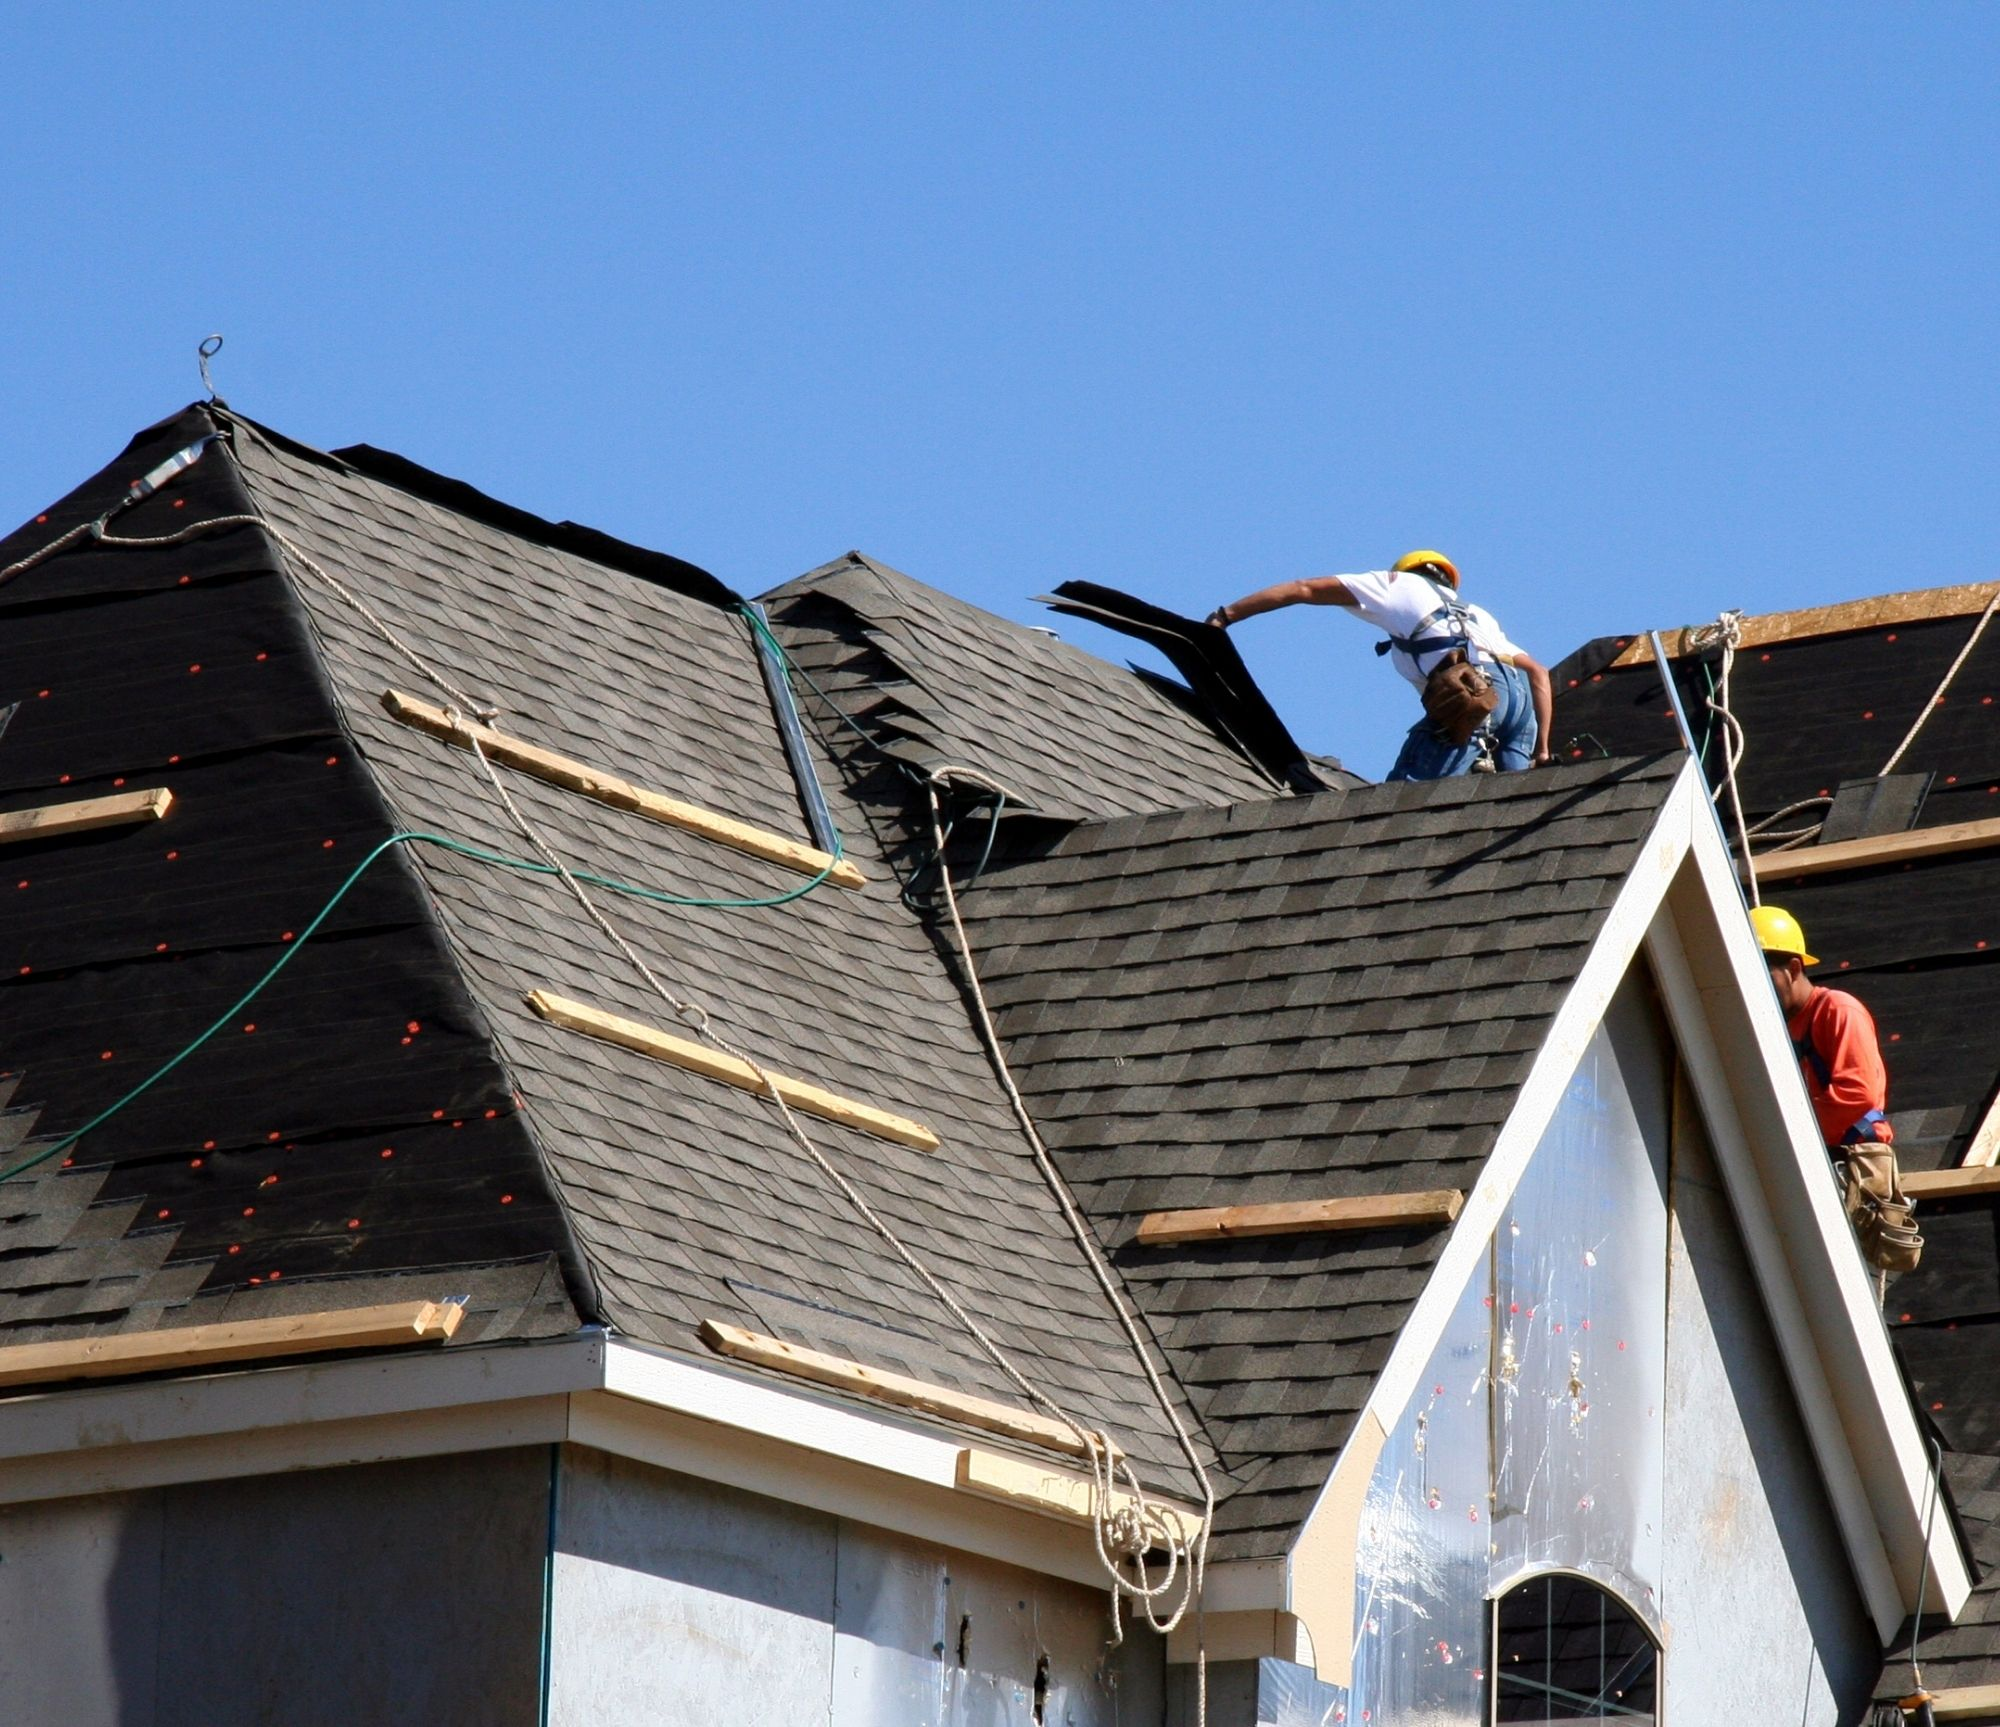 Roof pitch affects the cost of a roof